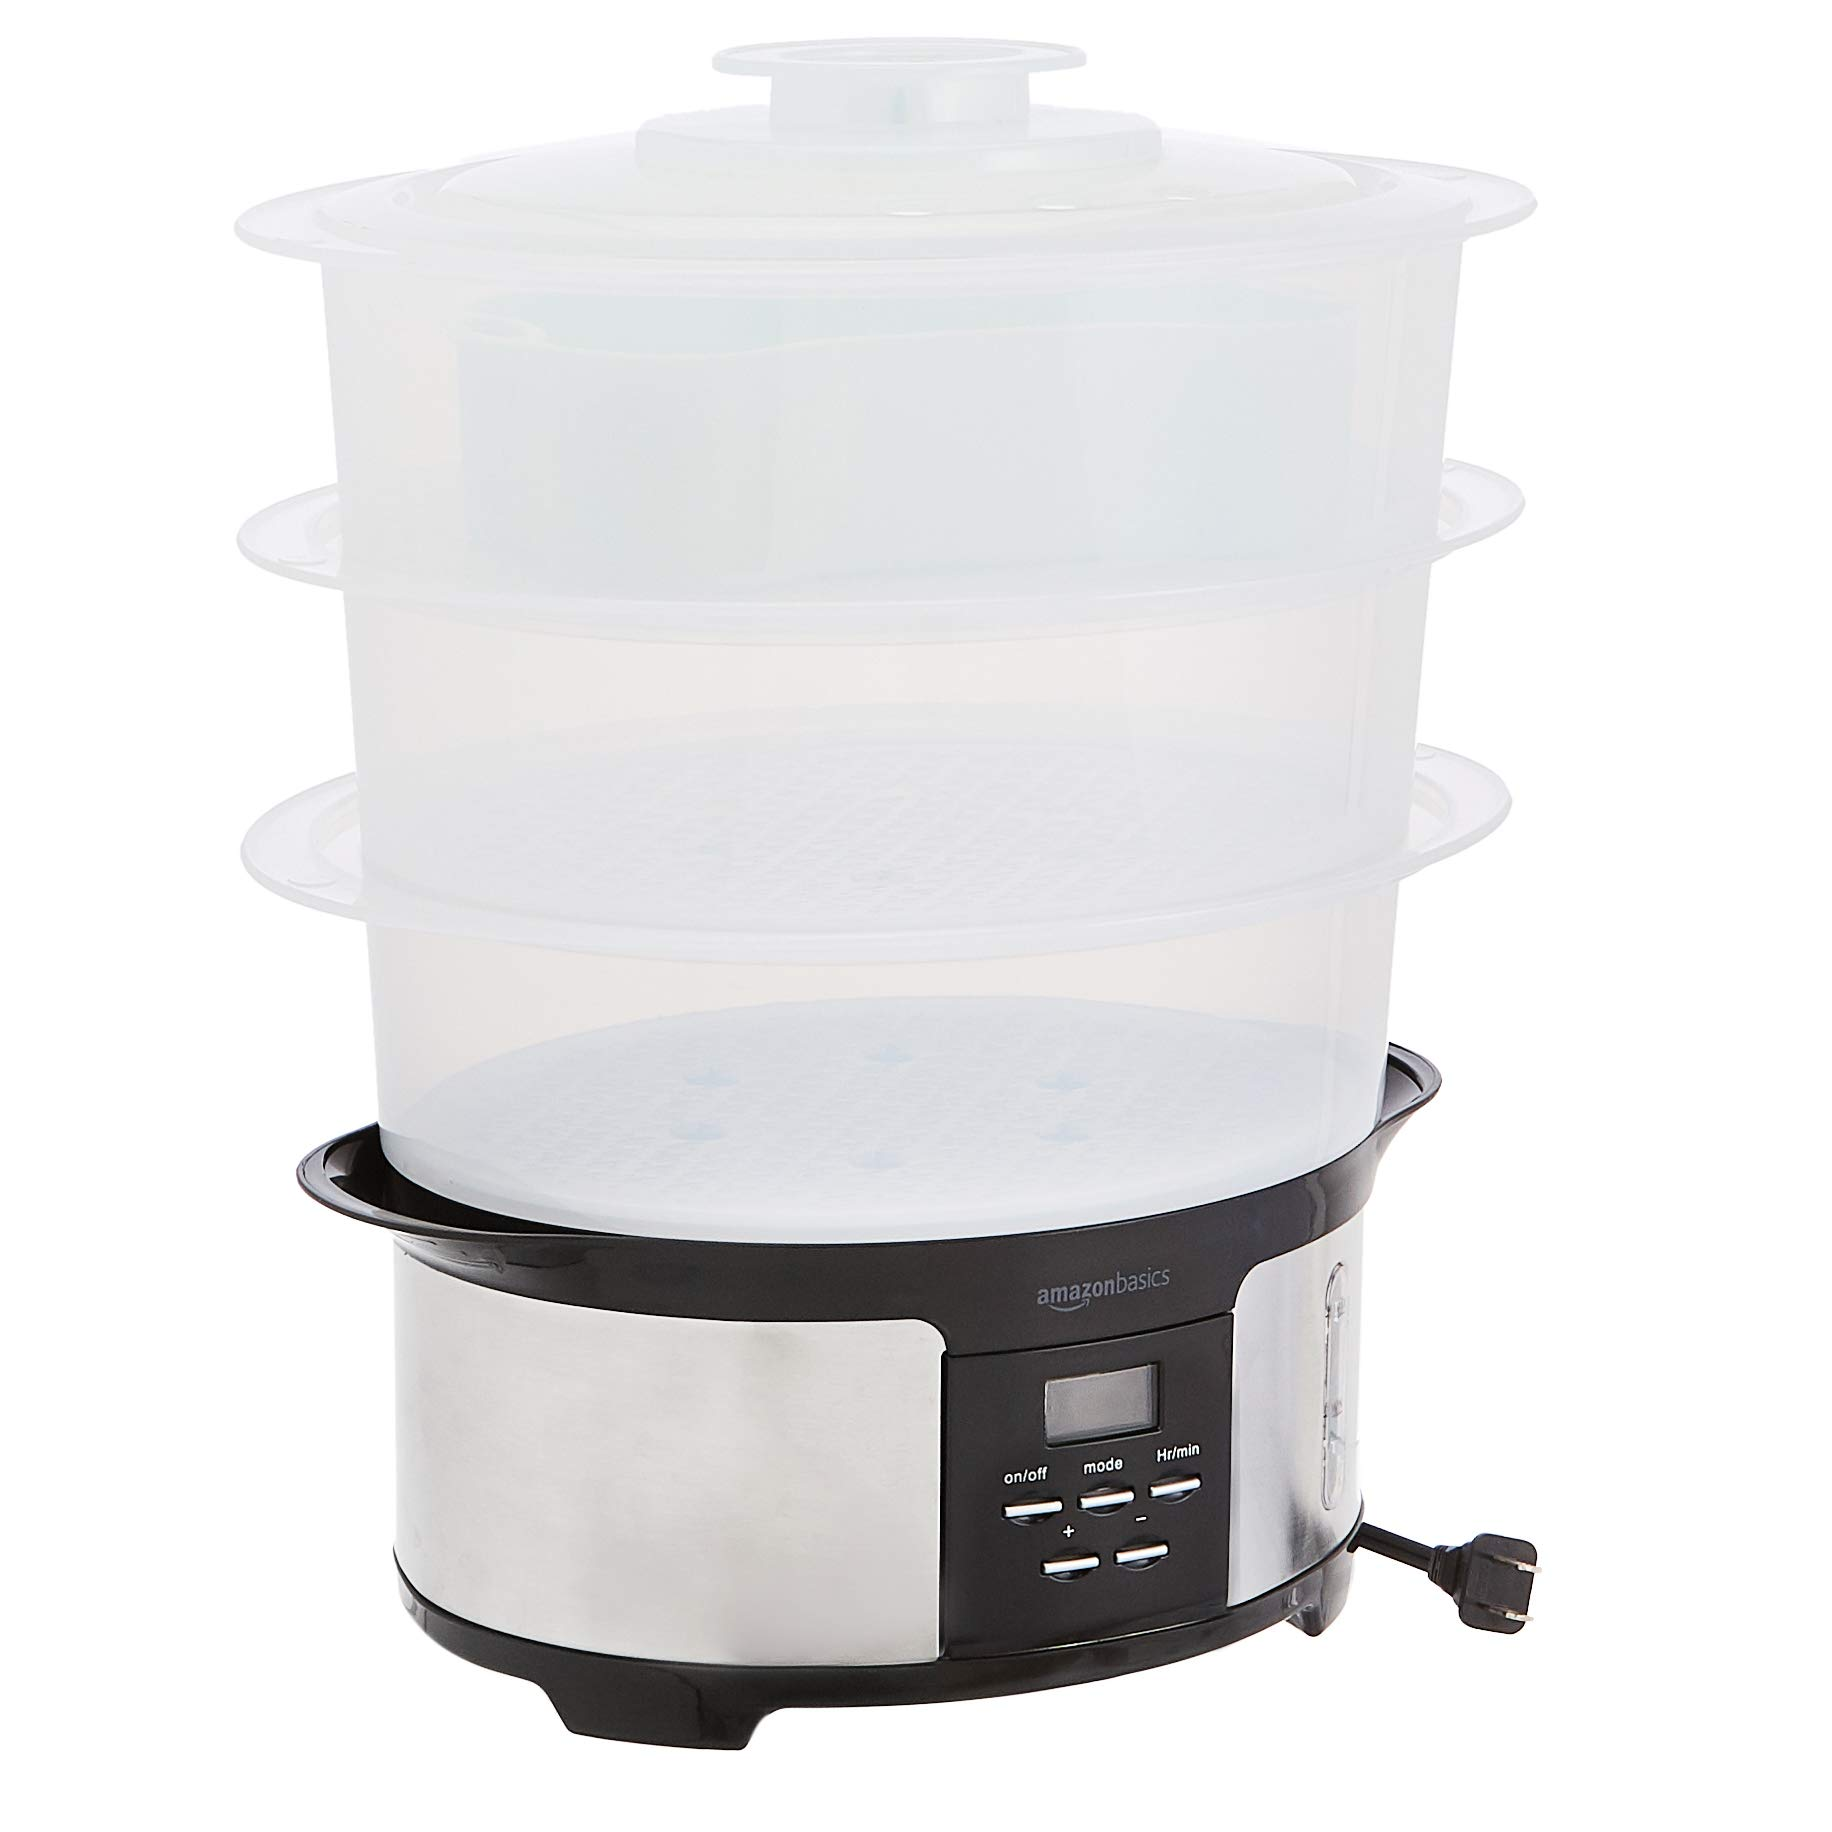 Amazon Basics 12.5 Quart 3-Tiered Digital Food Steamer - Black & Stainless Steel